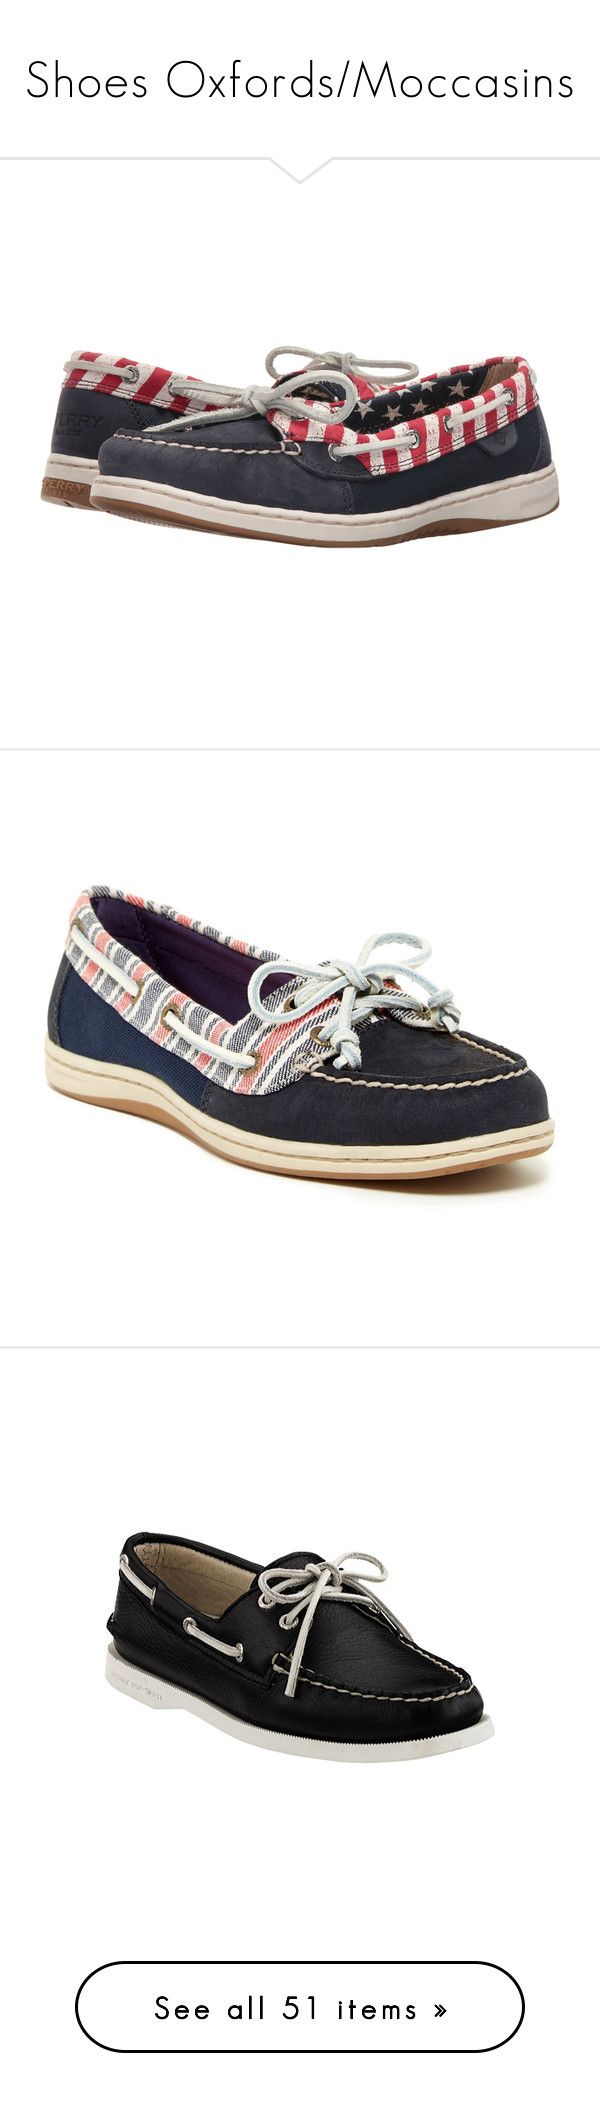 """""""Shoes Oxfords/Moccasins"""" by lululafitte ❤ liked on Polyvore featuring shoes, loafers, blue, blue boat shoes, sperry topsiders, red shoes, sperry shoes, navy blue shoes, navy and slip on shoes"""